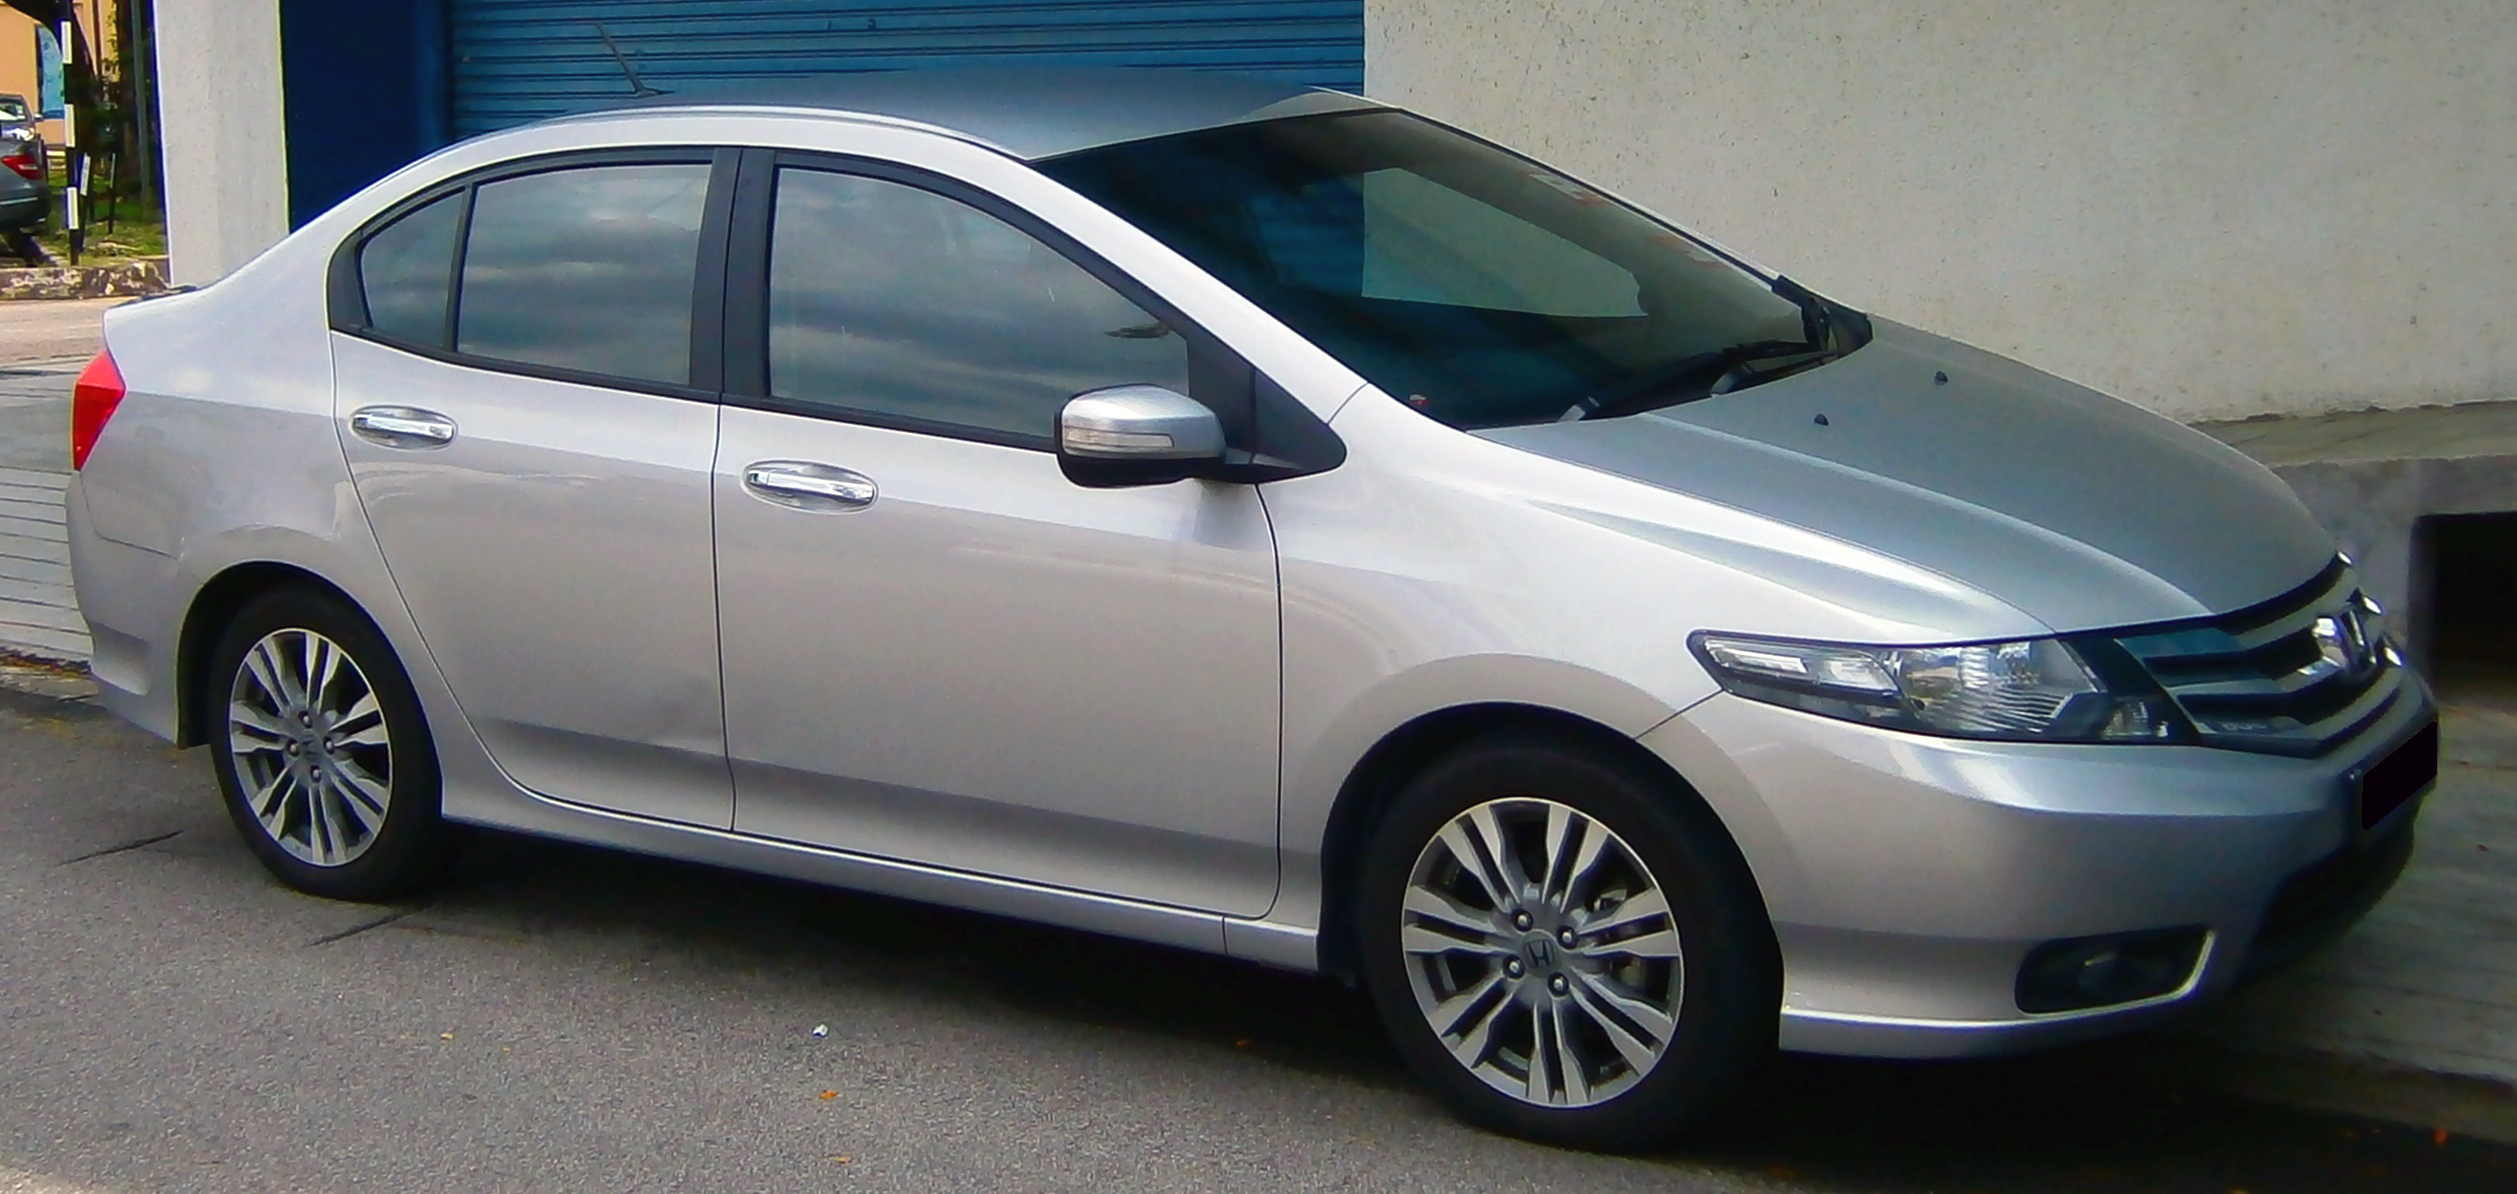 Honda City 2018 Exterior Side View